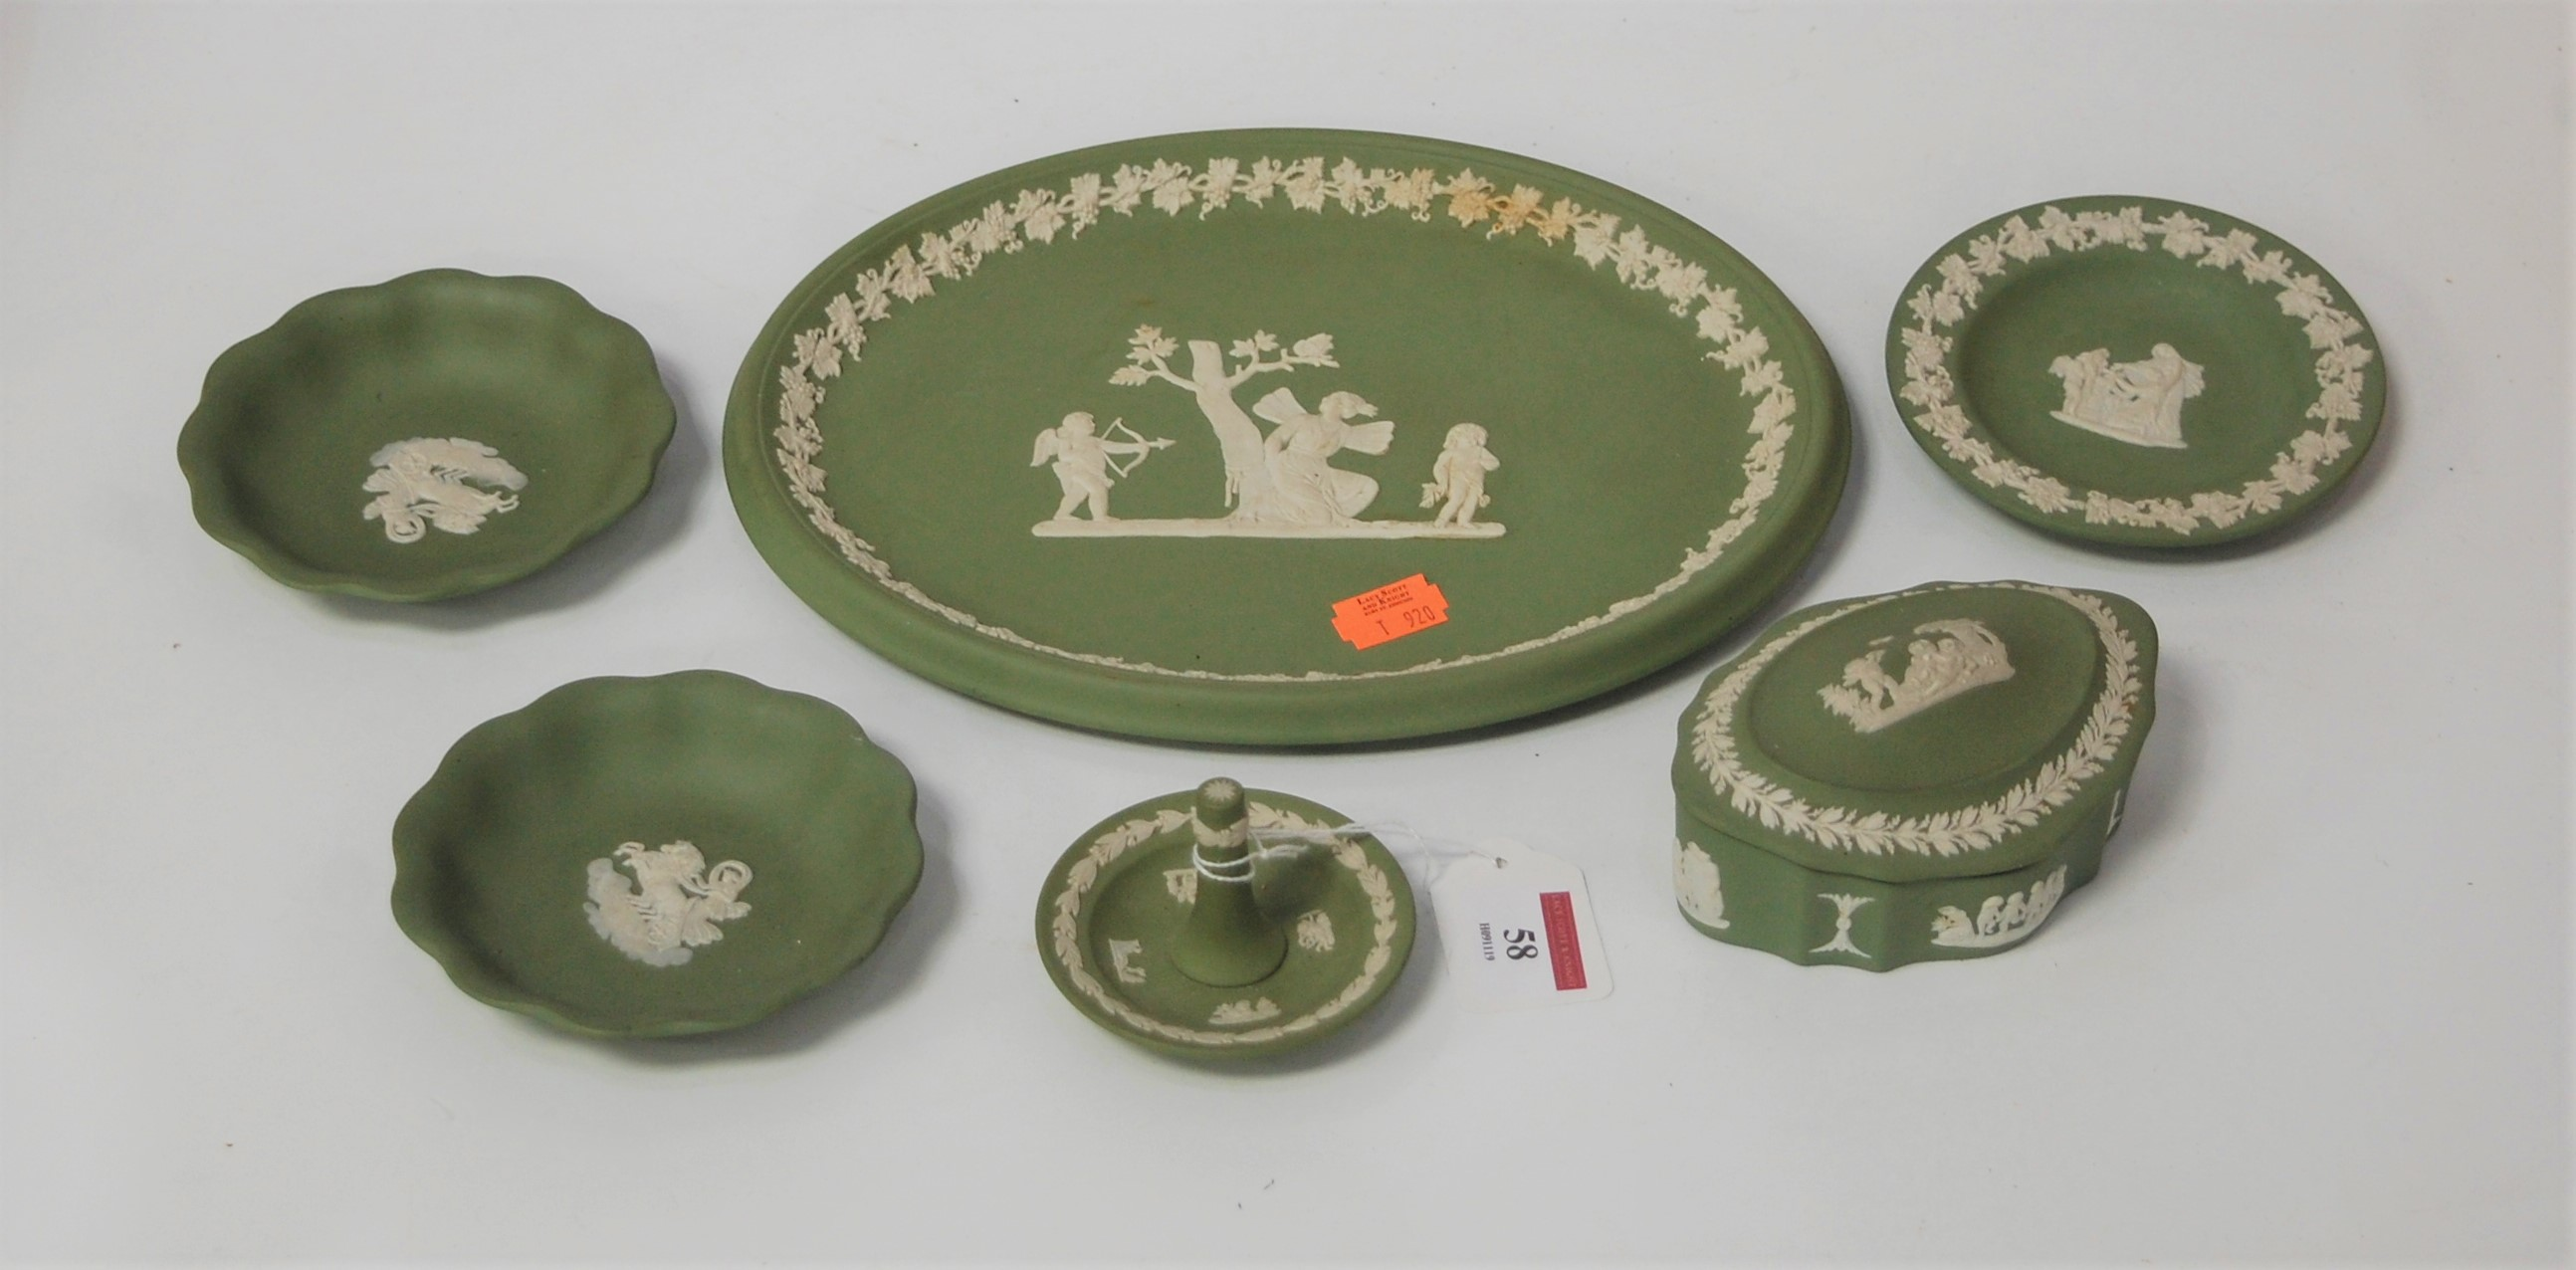 Lot 58 - A small collection of Wedgwood green jasperware, to include ring tree, oval dish, trinket jar and